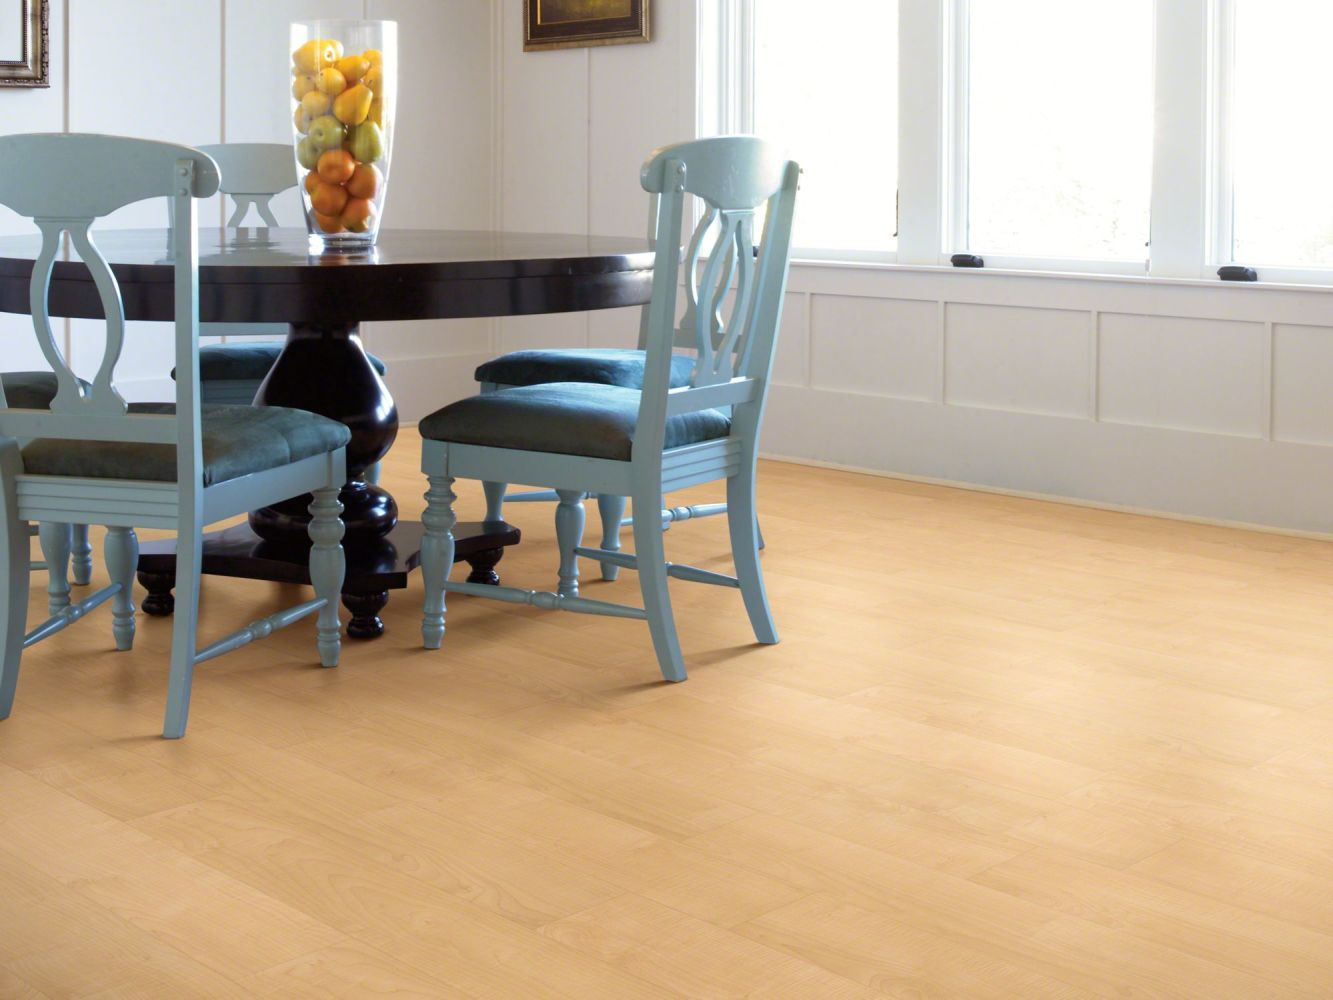 Shaw Floors Resilient Property Solutions Modernality 6 Plank Bright Lights 00225_VPS41